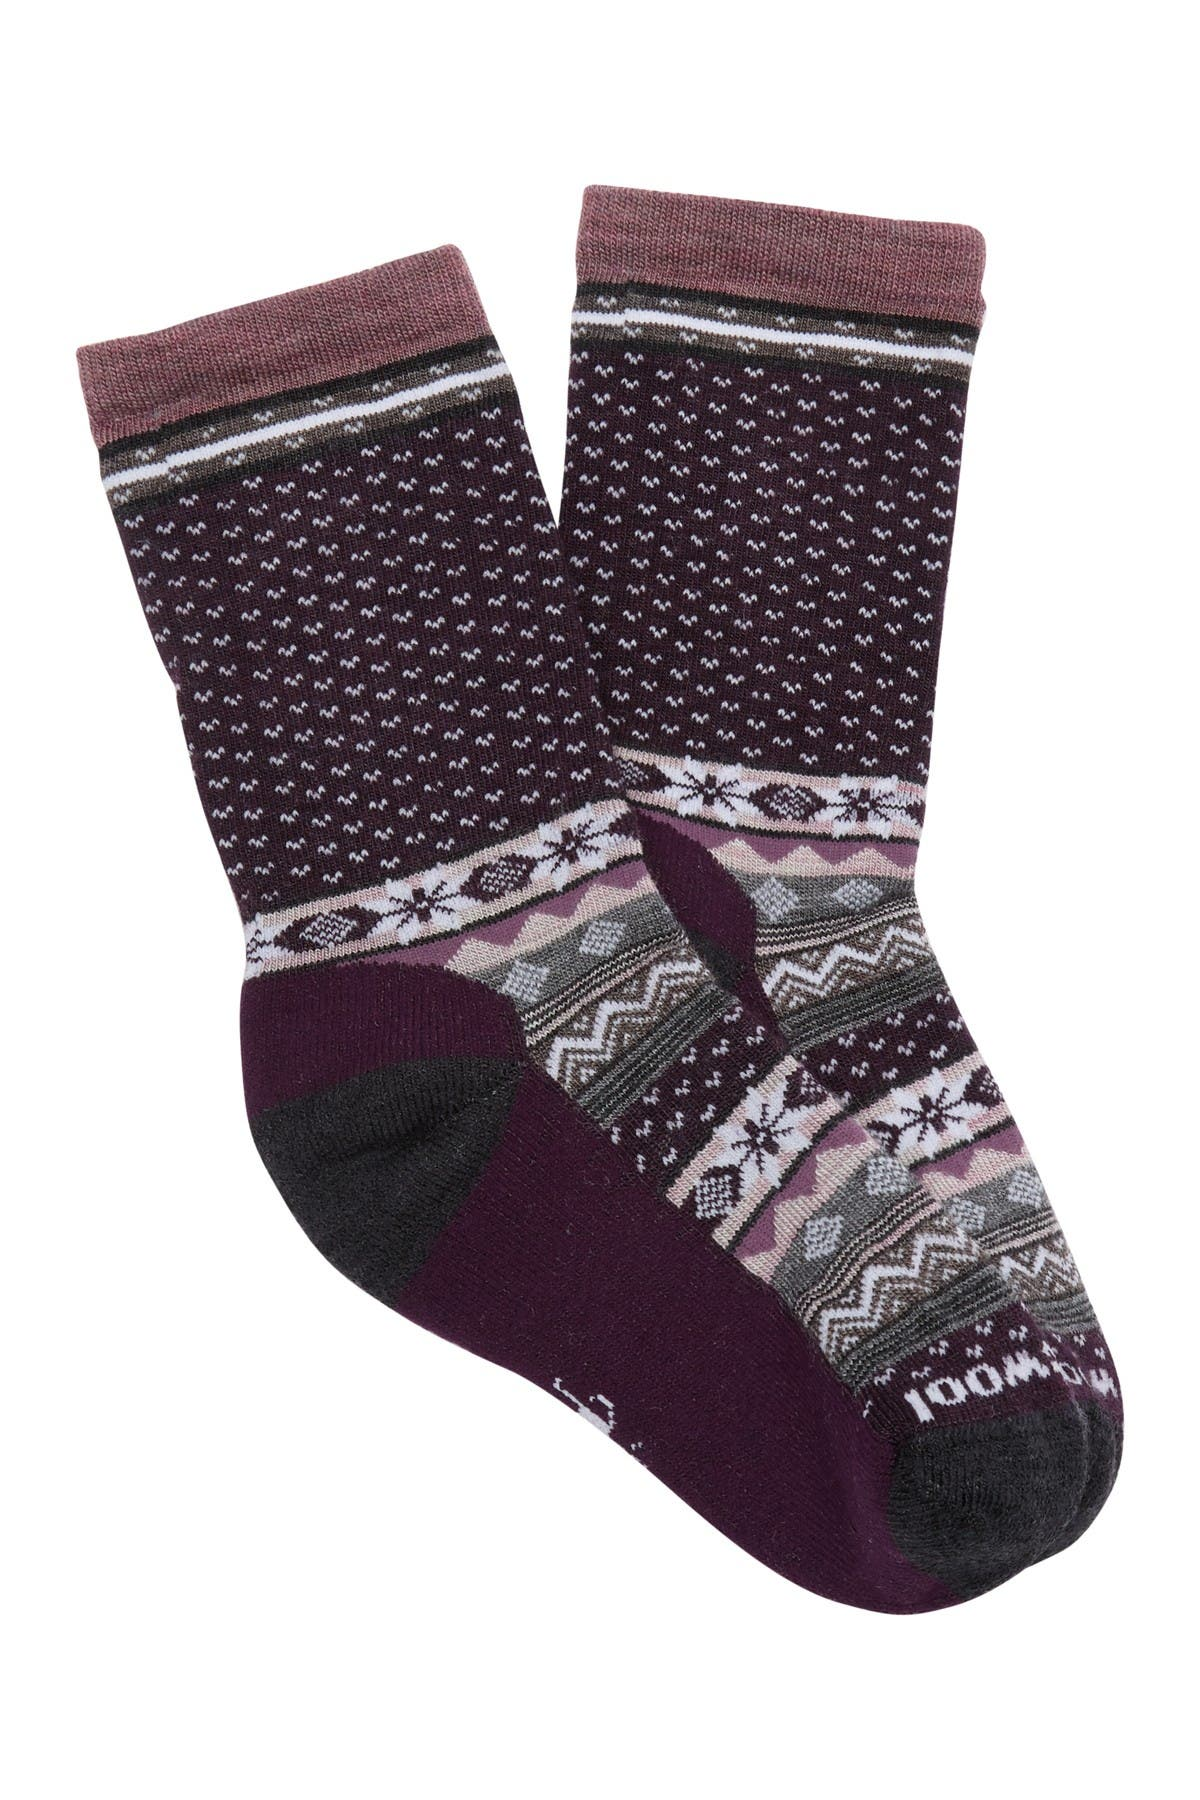 Image of SmartWool Cozy Cabin Wool Blend Crew Socks